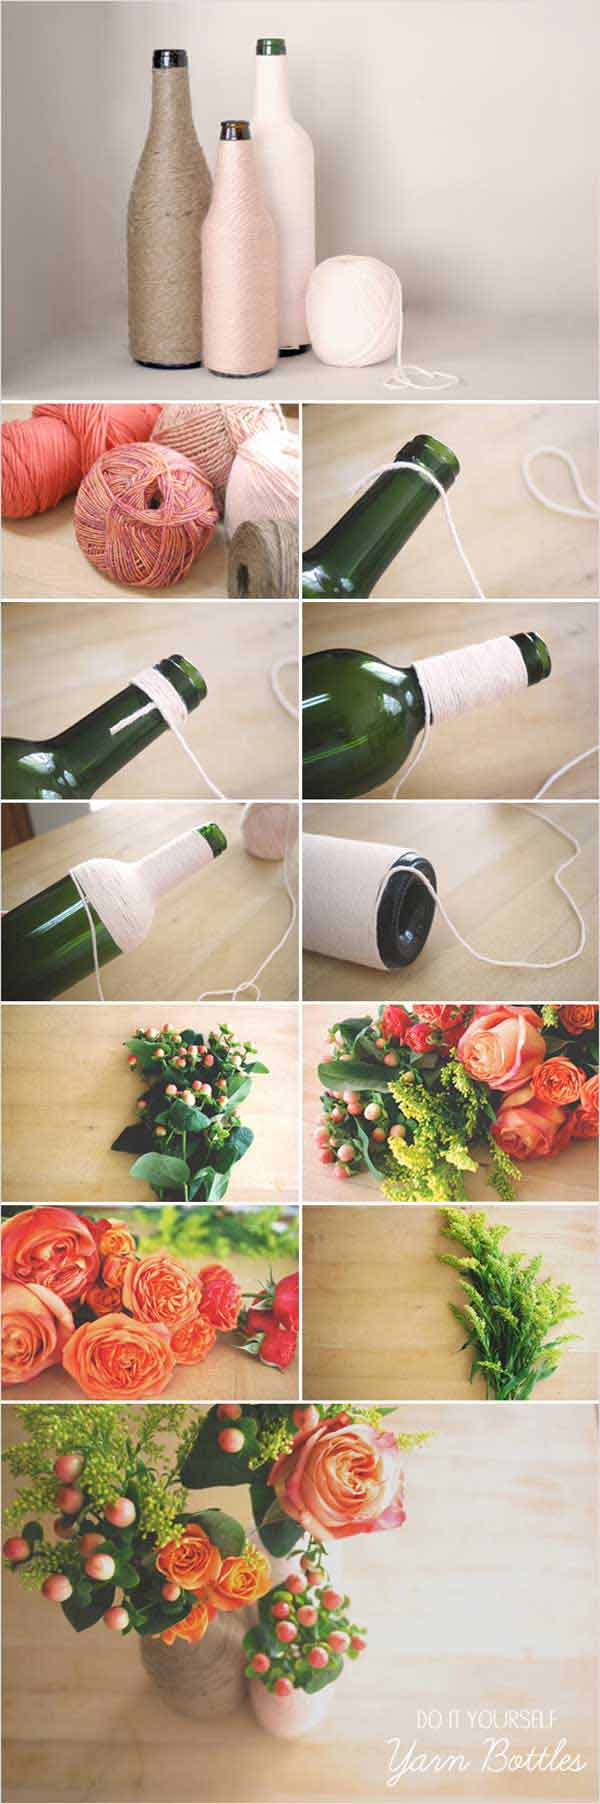 diy-wedding-ideas-16-2